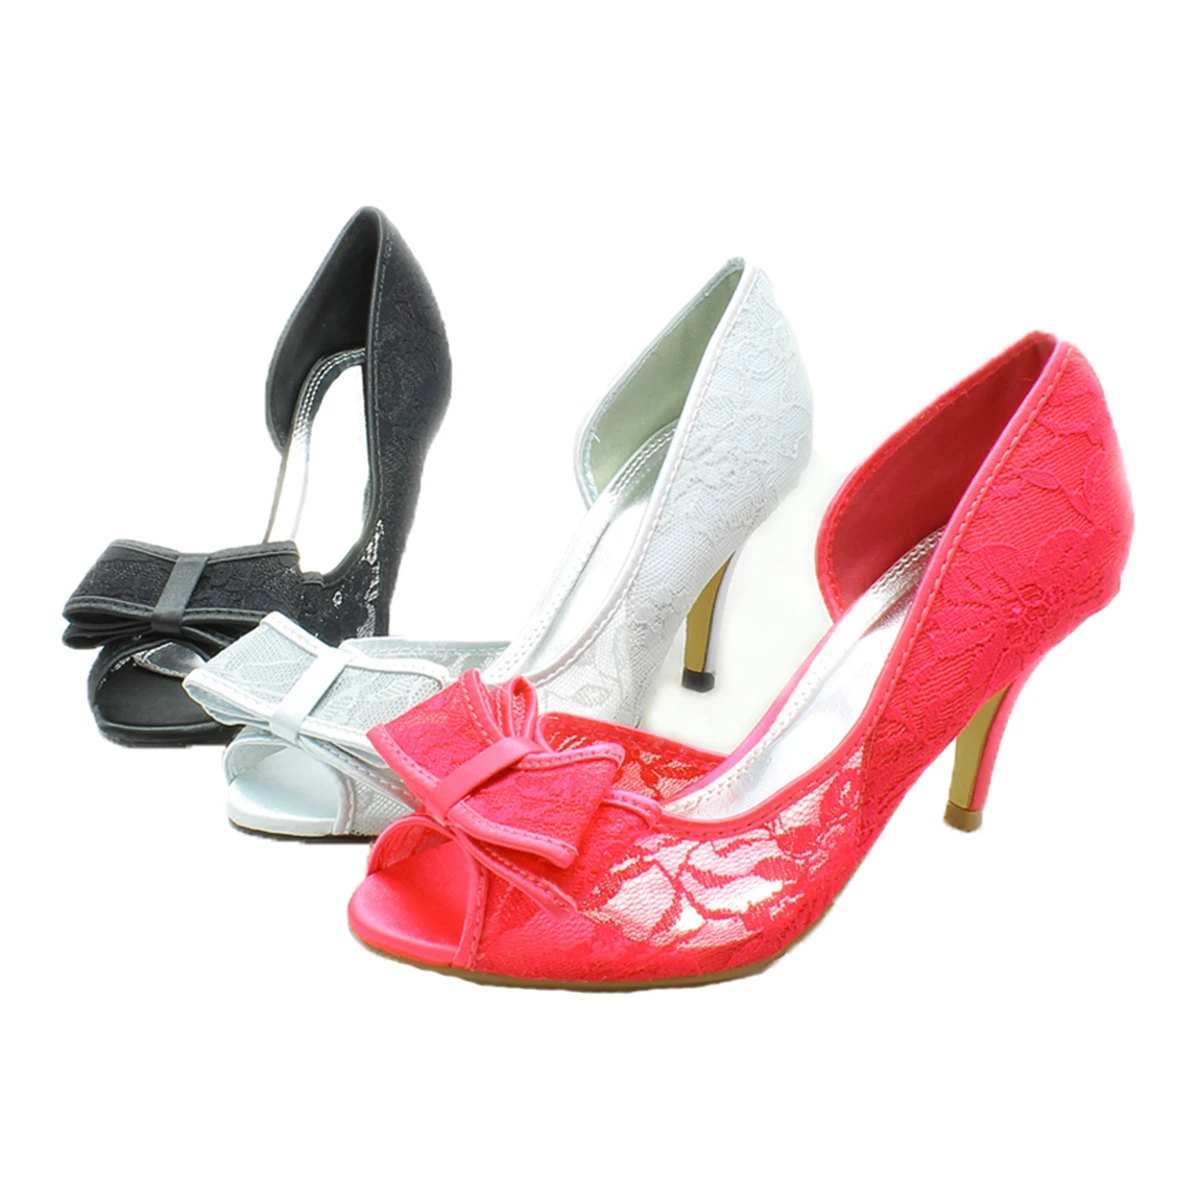 Lace Medium Heel Wedding Shoes with Bow Front